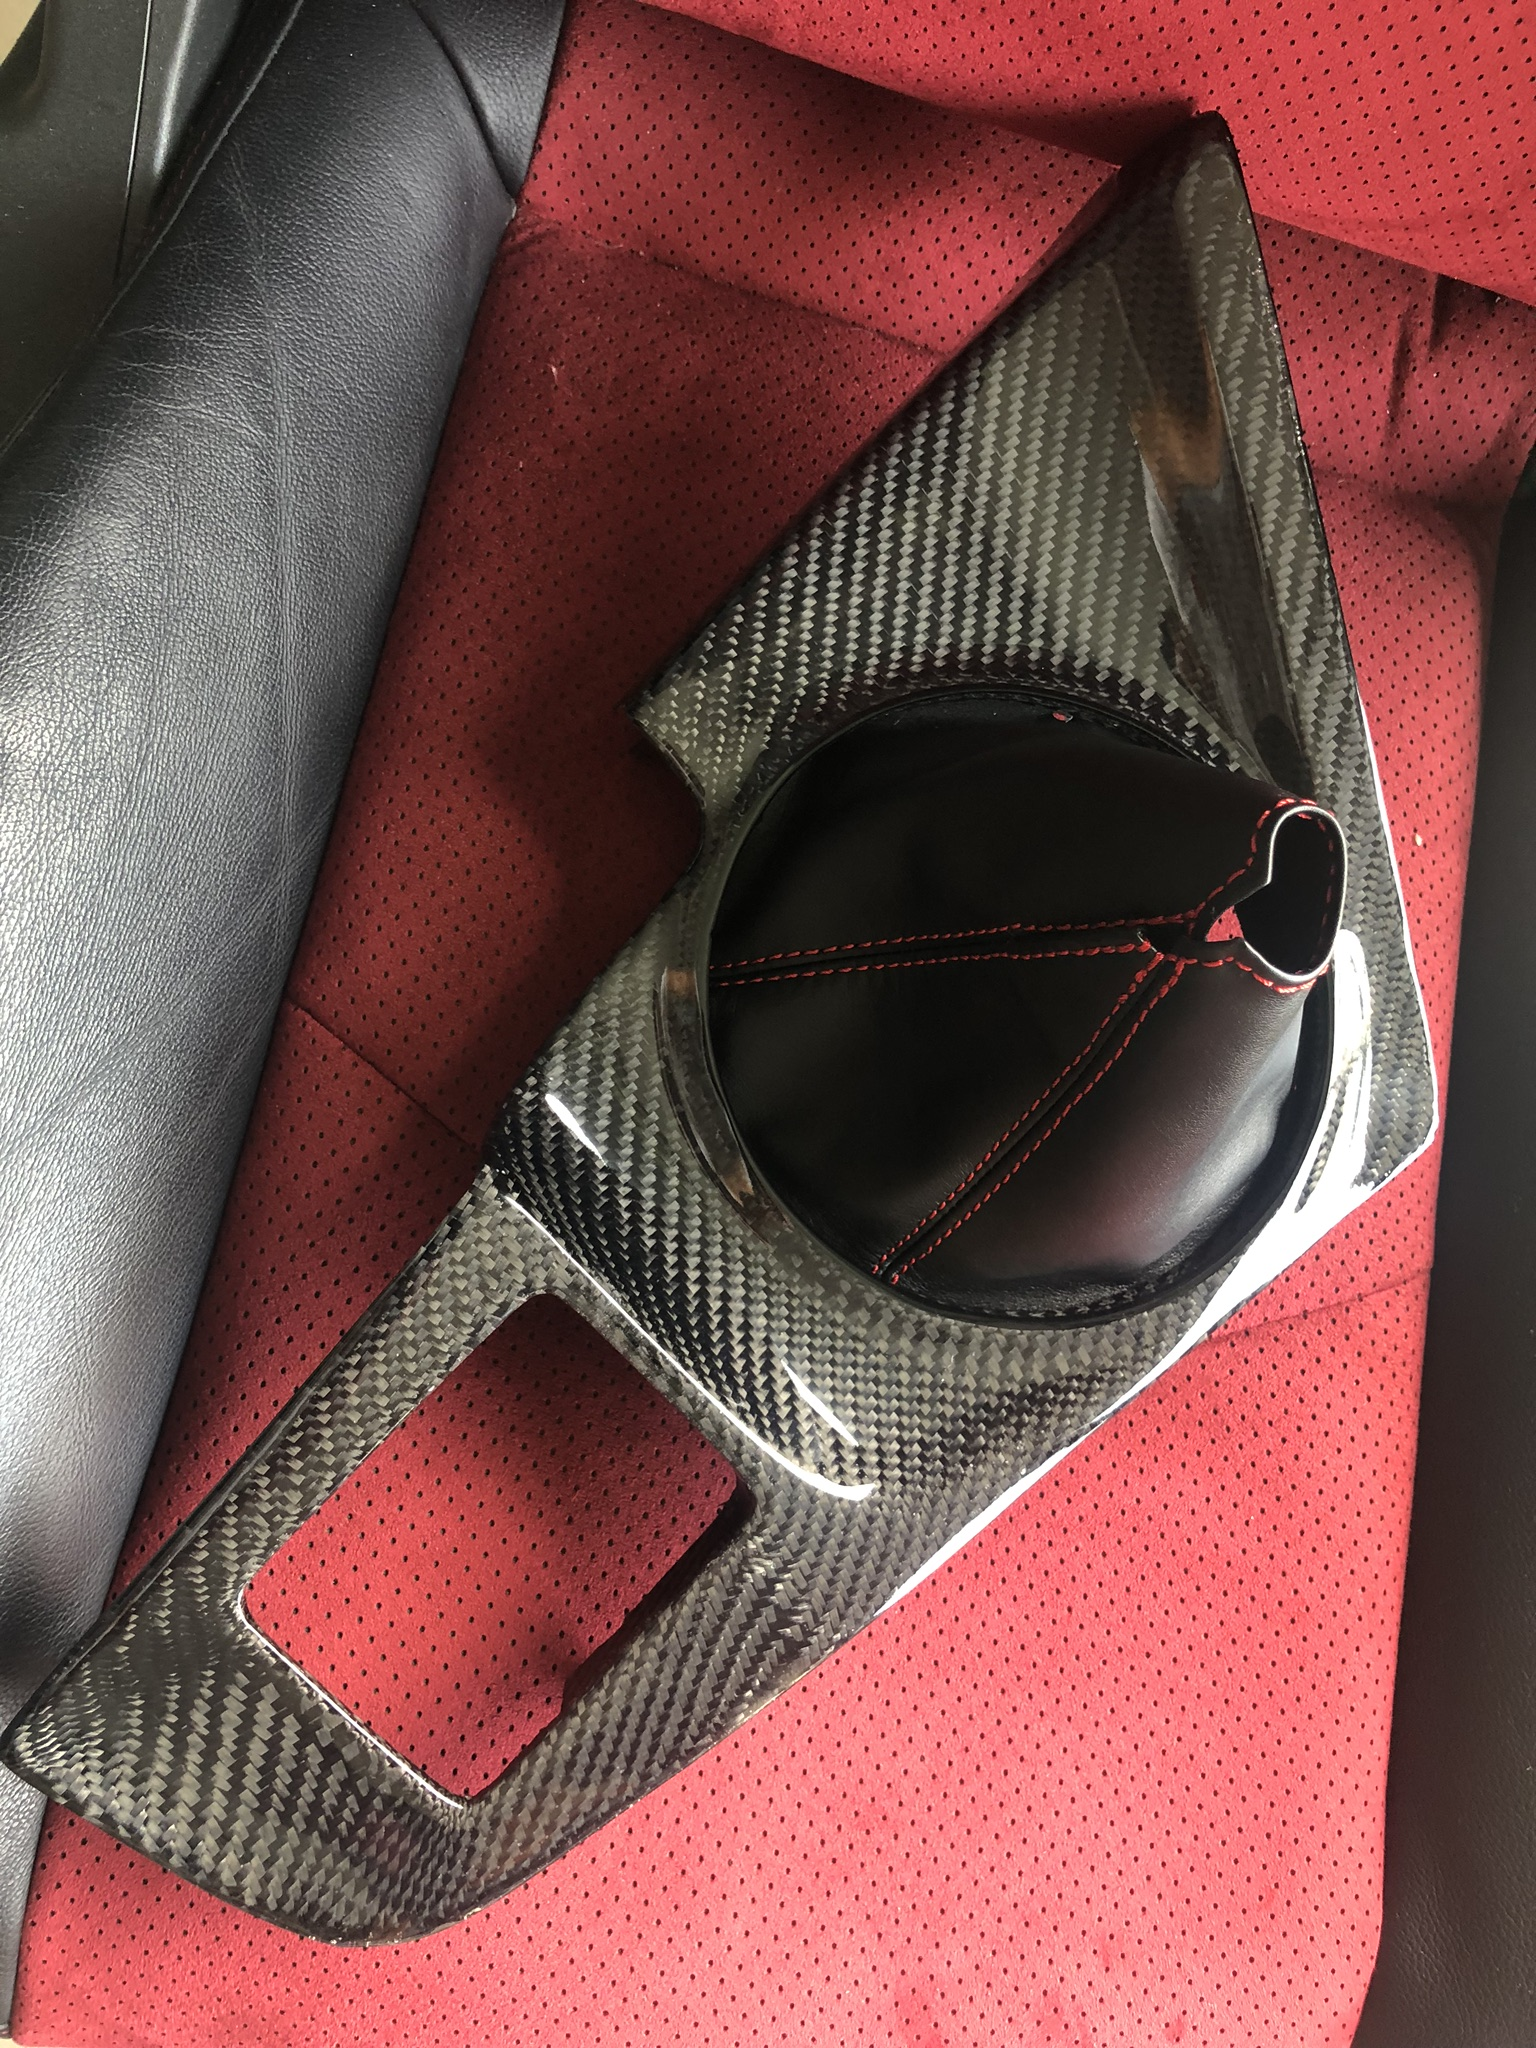 93-98 Toyota Supra JZA80 Carbon Fiber Manual MT Shifter panel / red stitch leather shift boot(LHD)